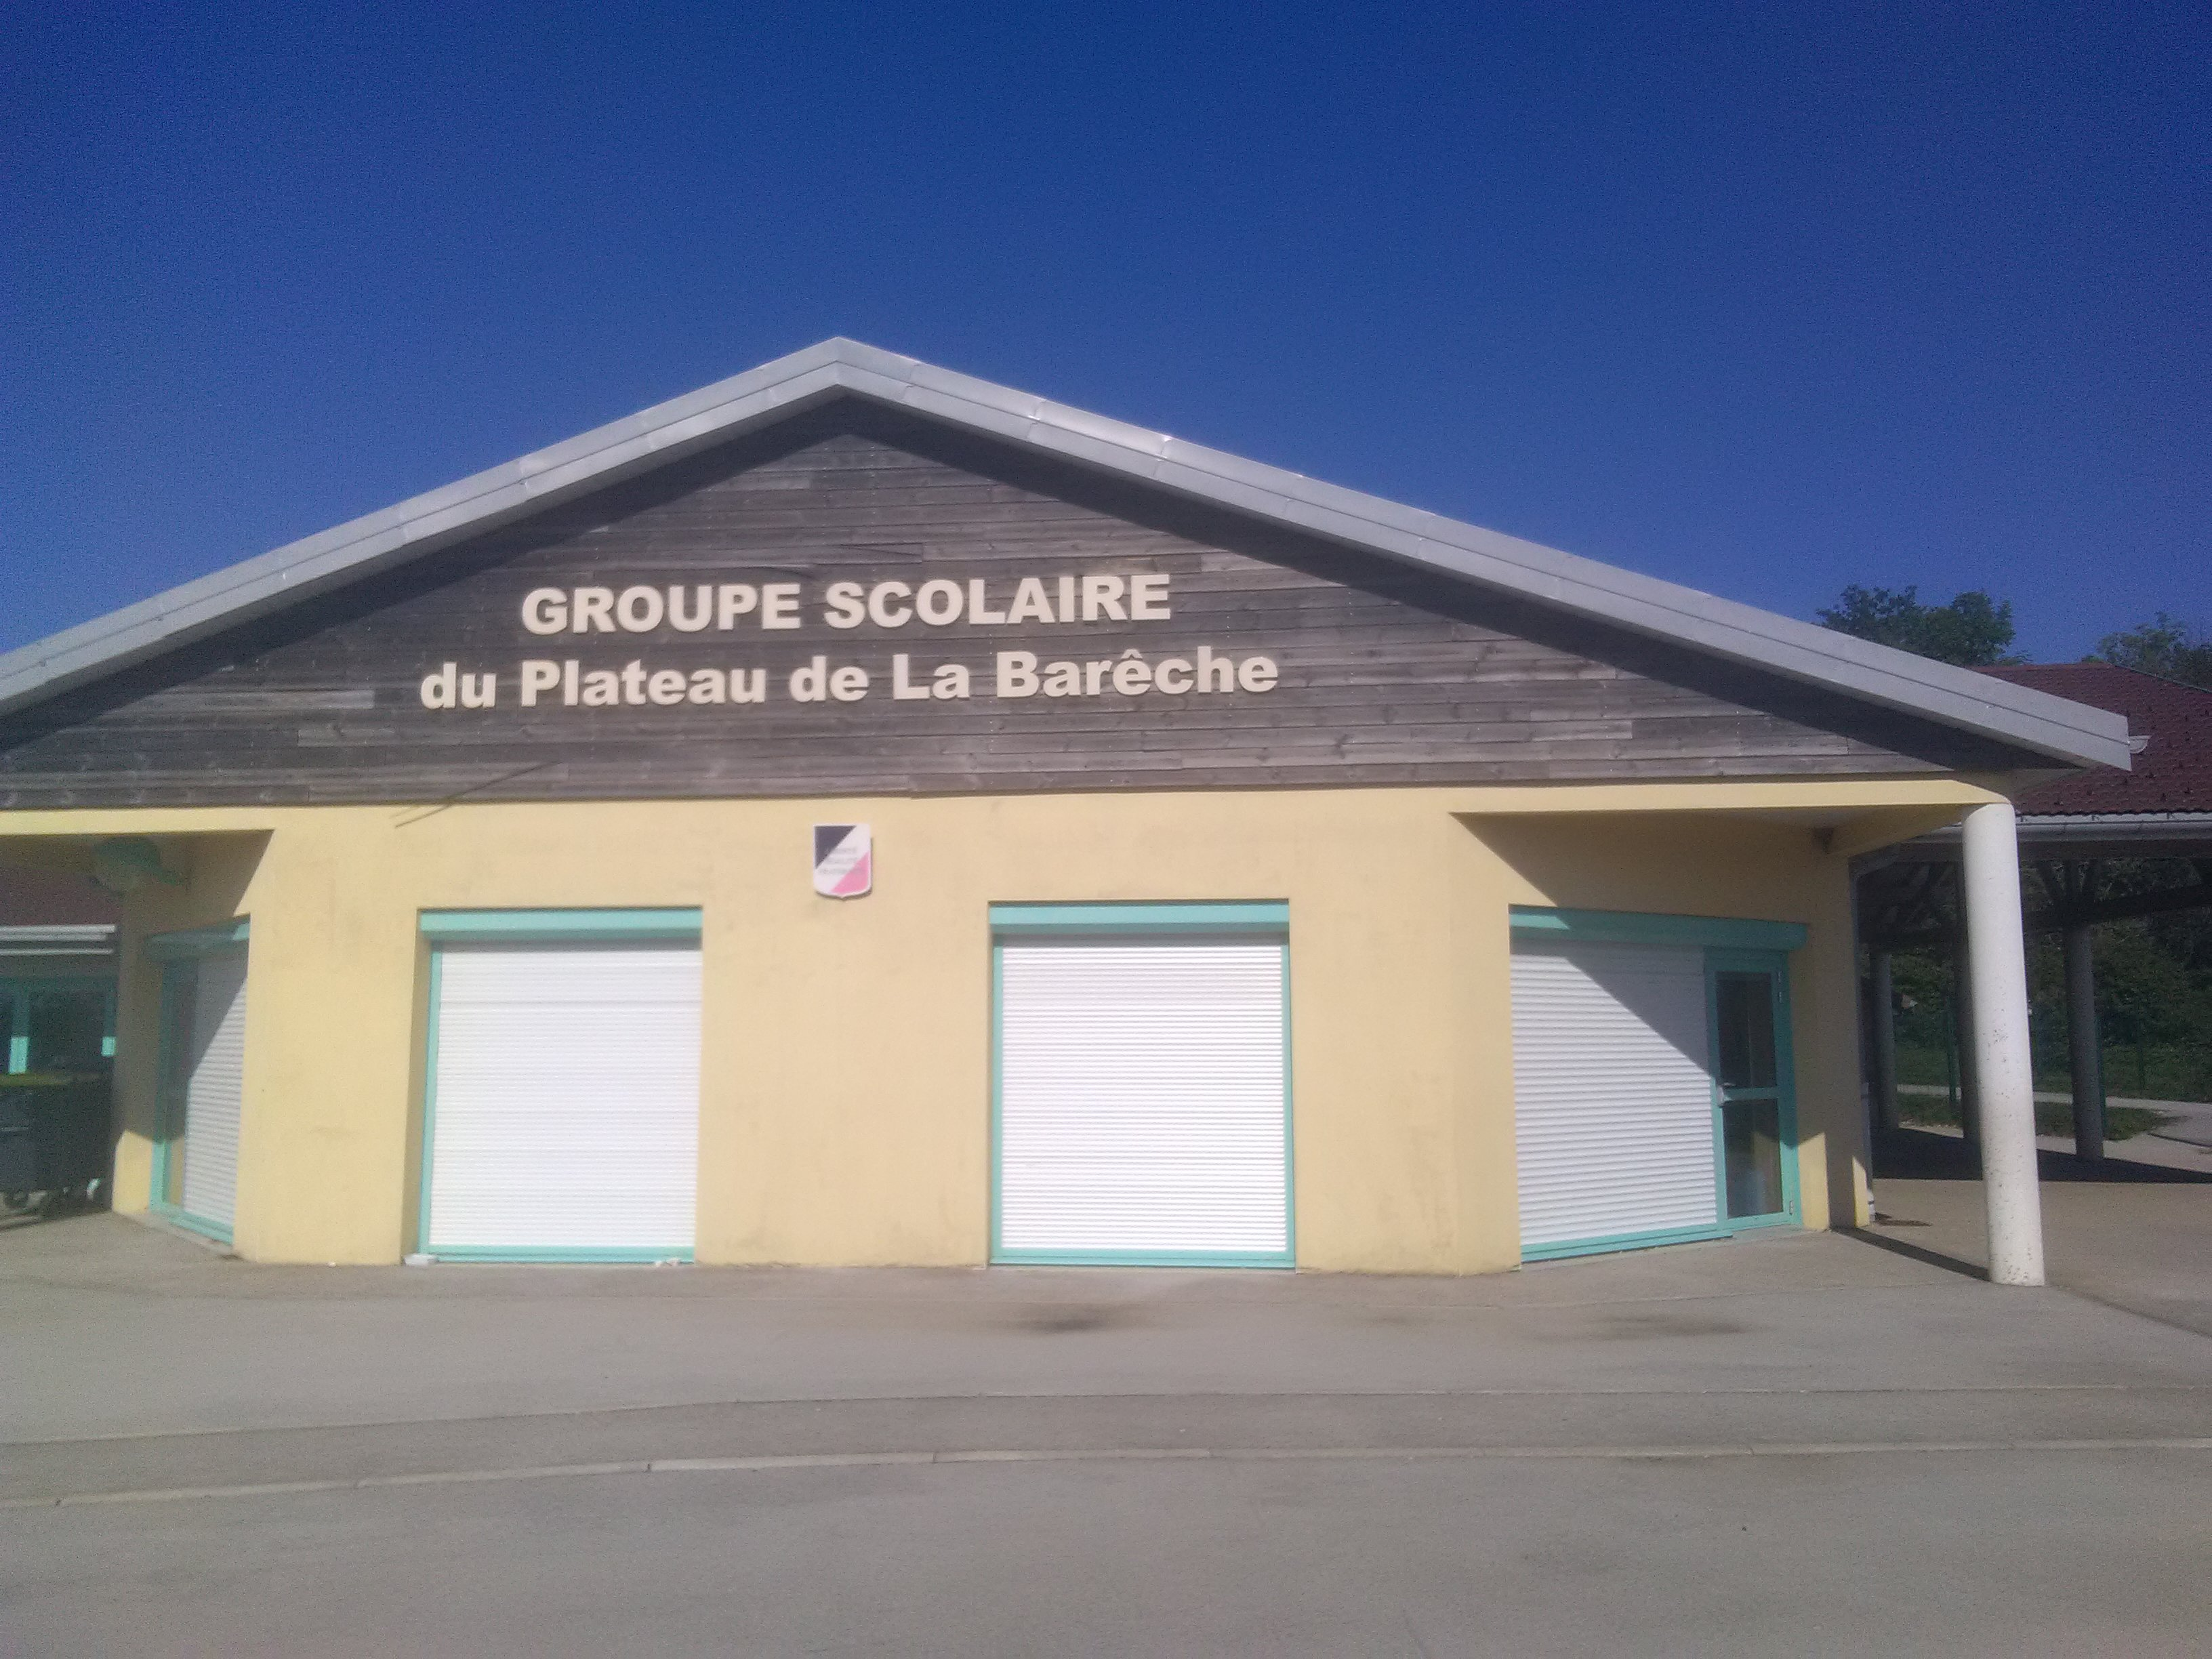 Groupe scolaire 1.jpg